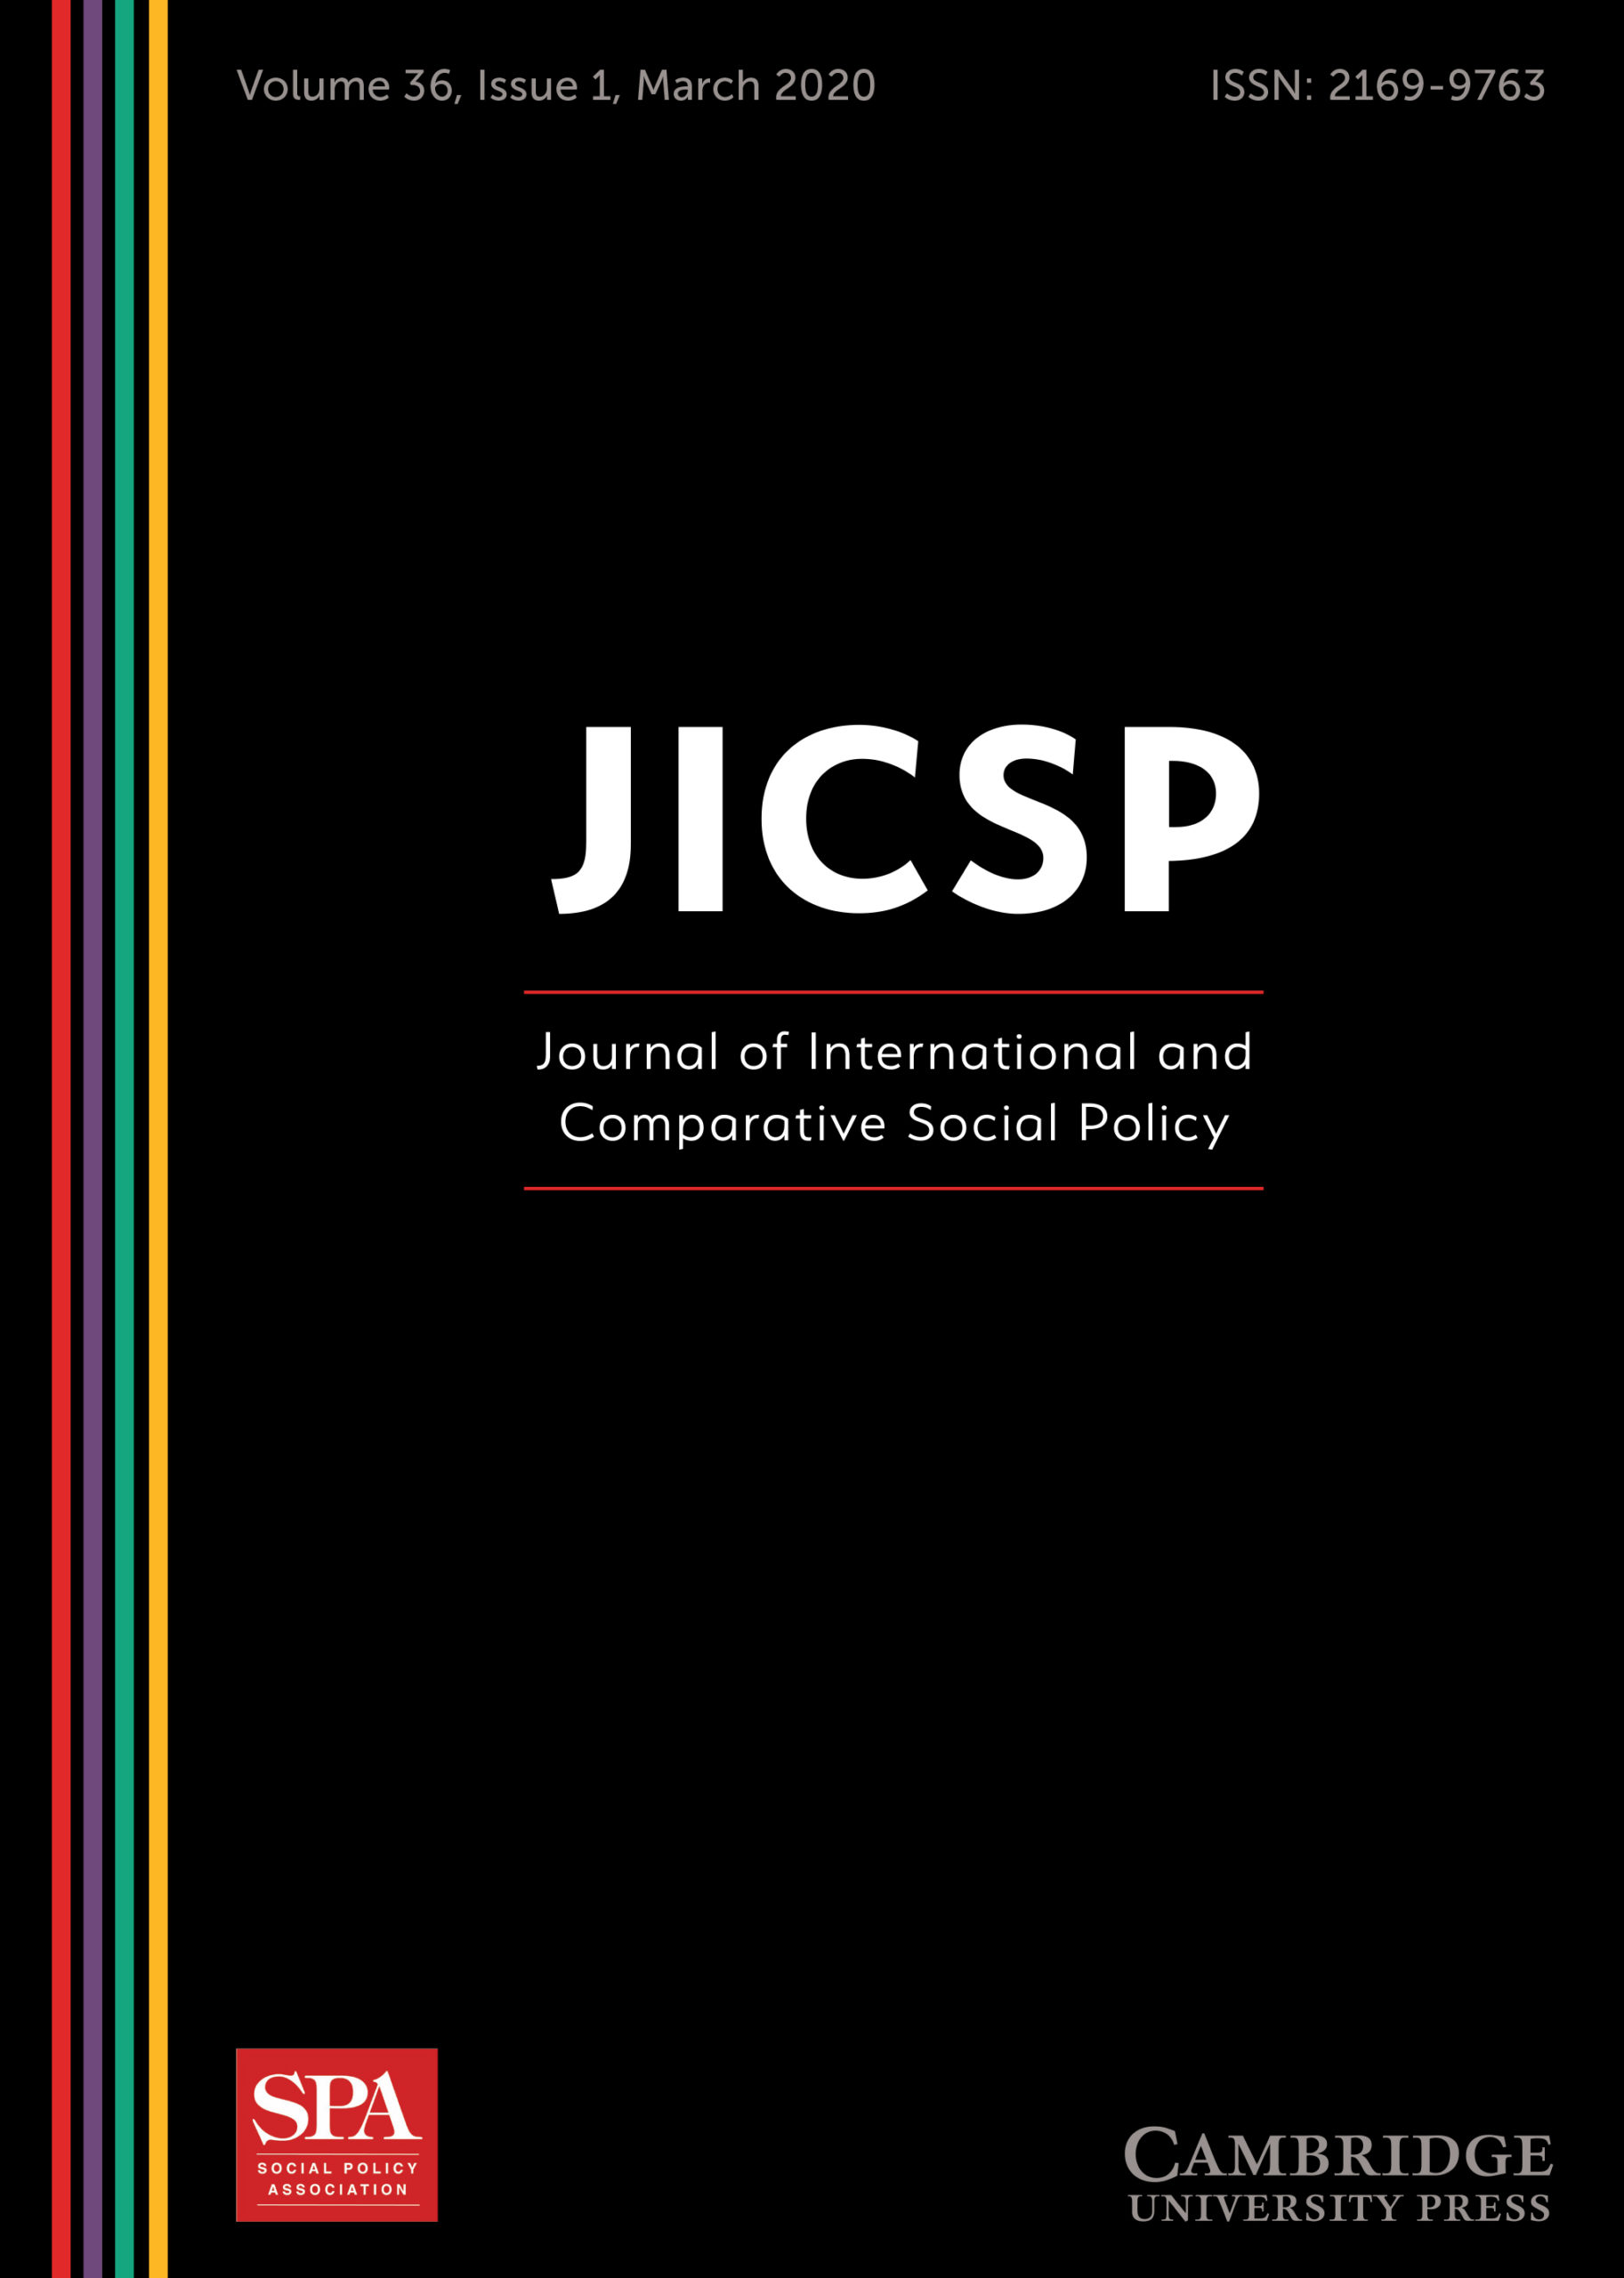 journal_of international and comparative social policy